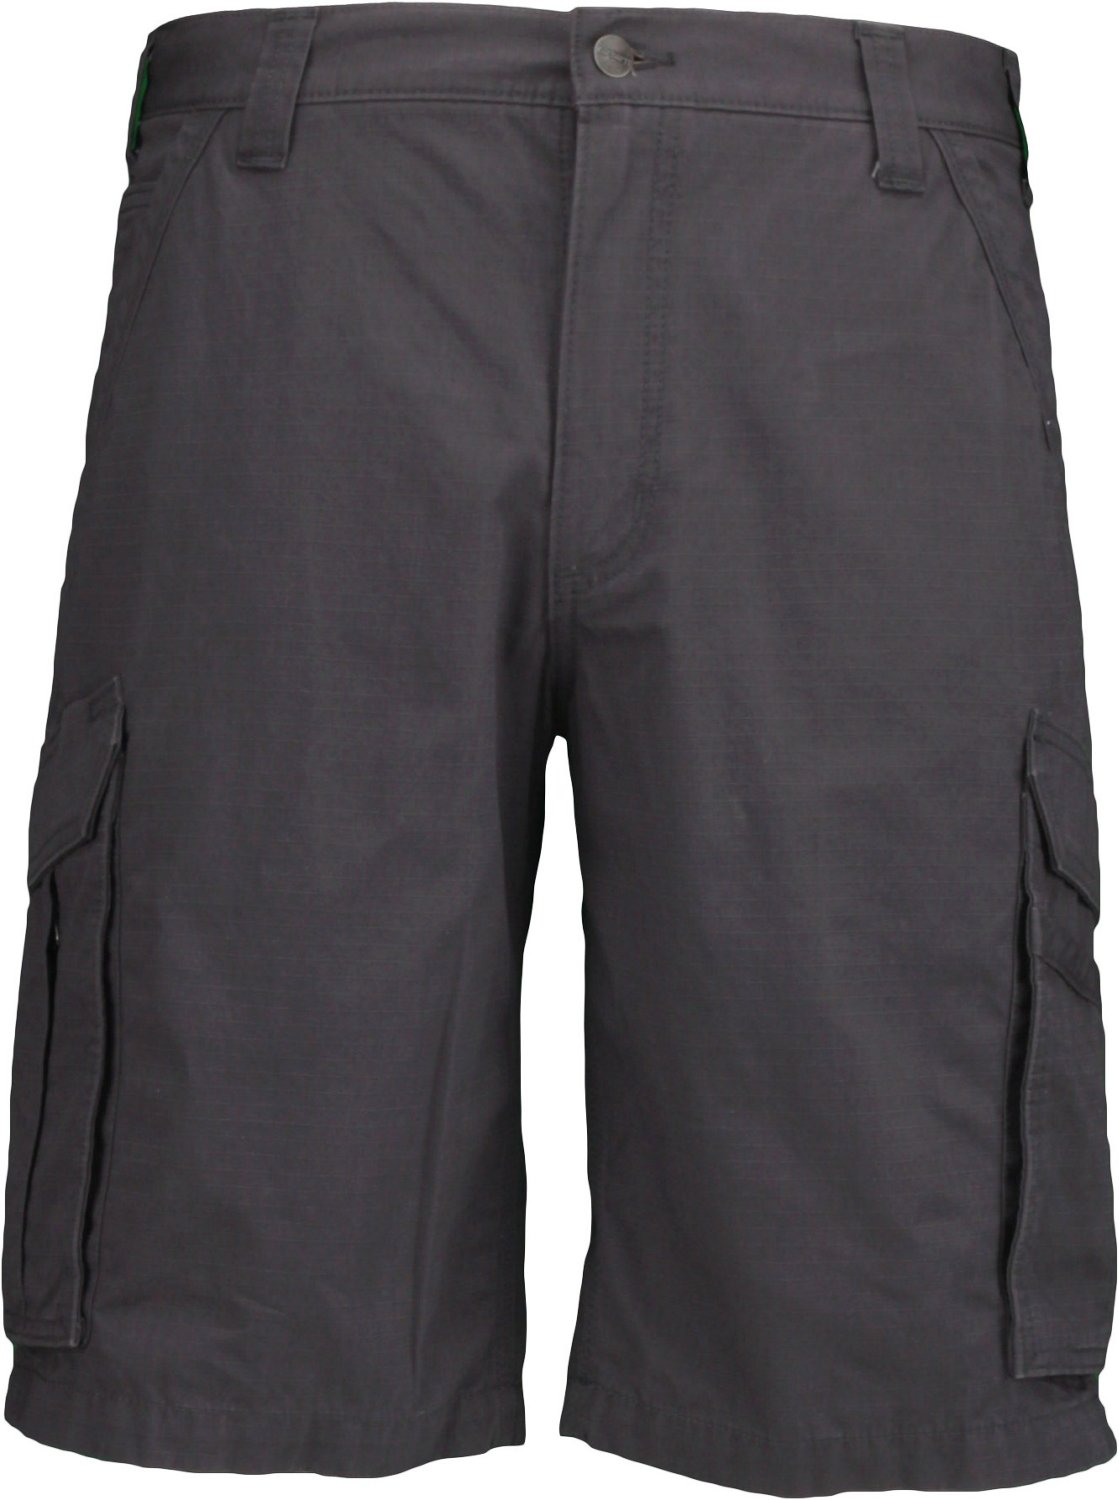 Display product reviews for Carhartt Men's Force Tappen Cargo Short